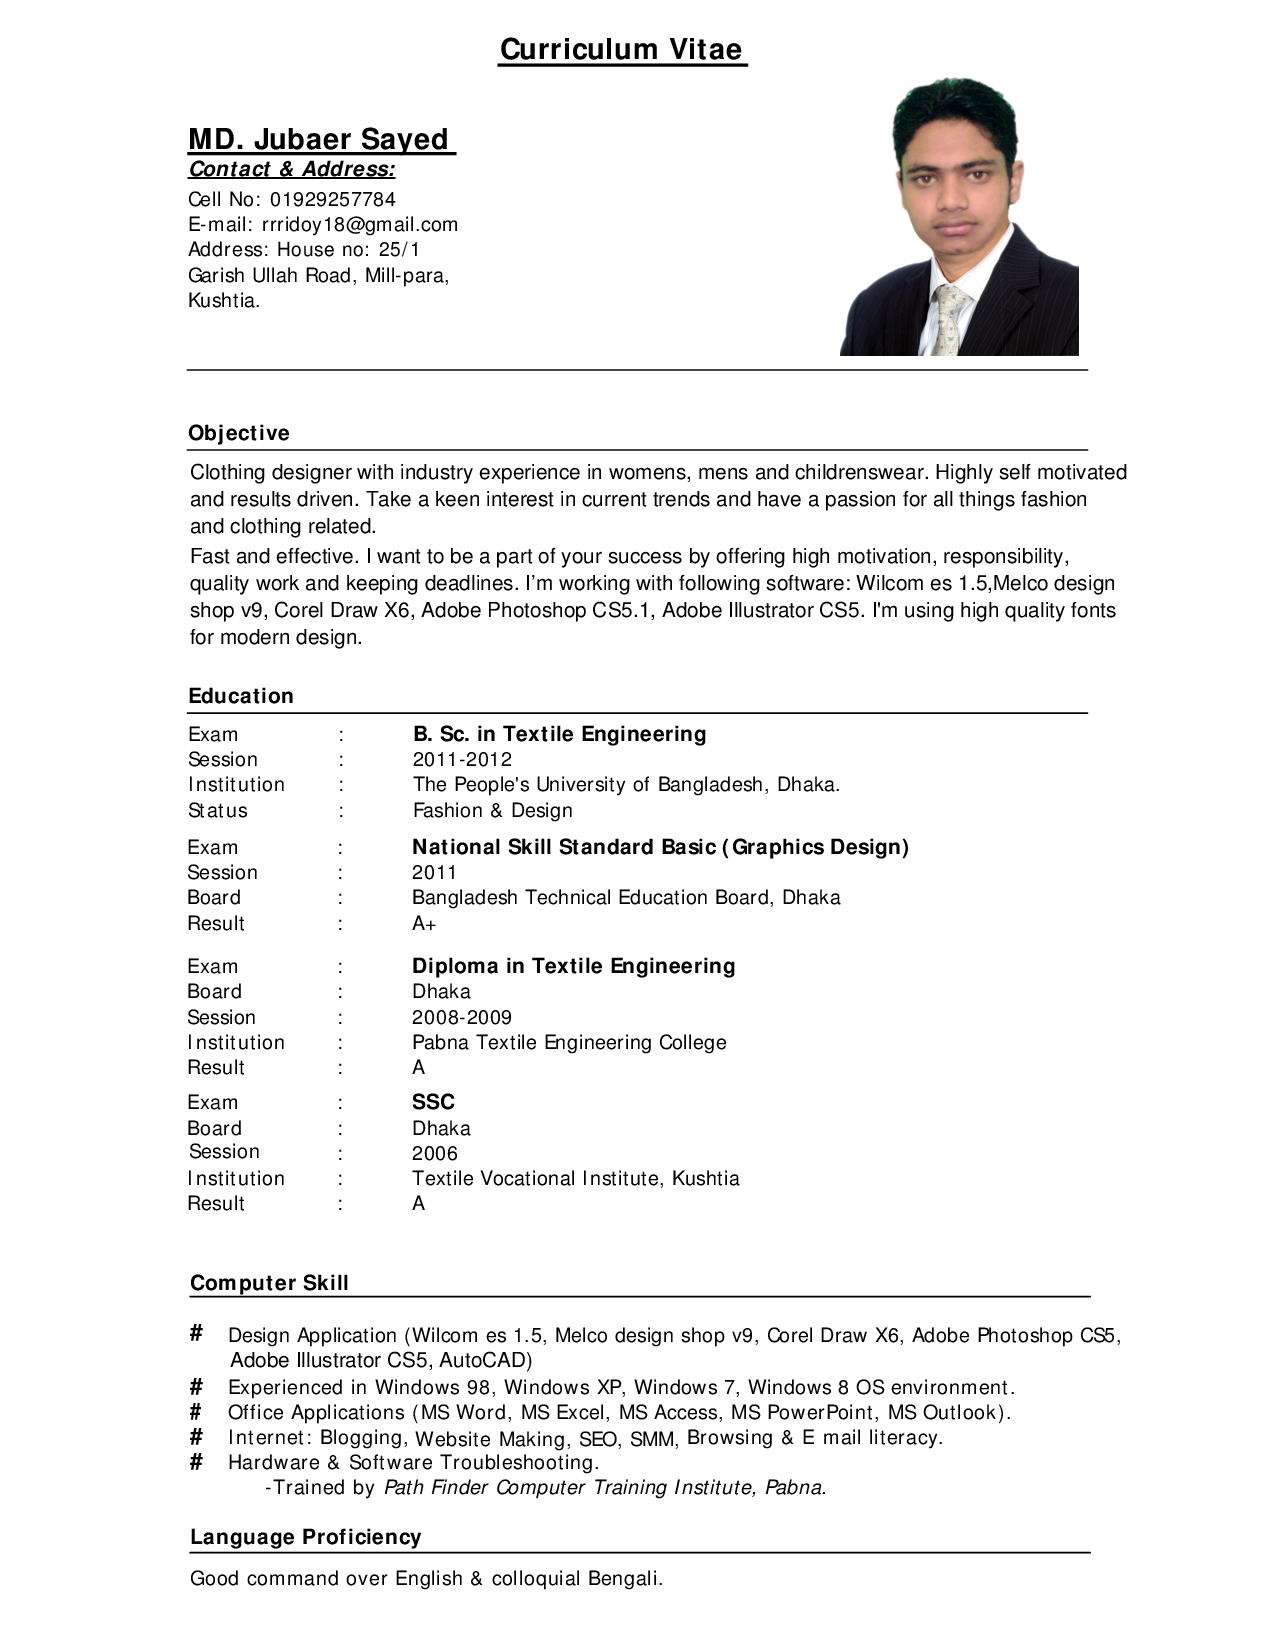 Example Resume, Computer Skills And Education For Curriculum Vitae ...